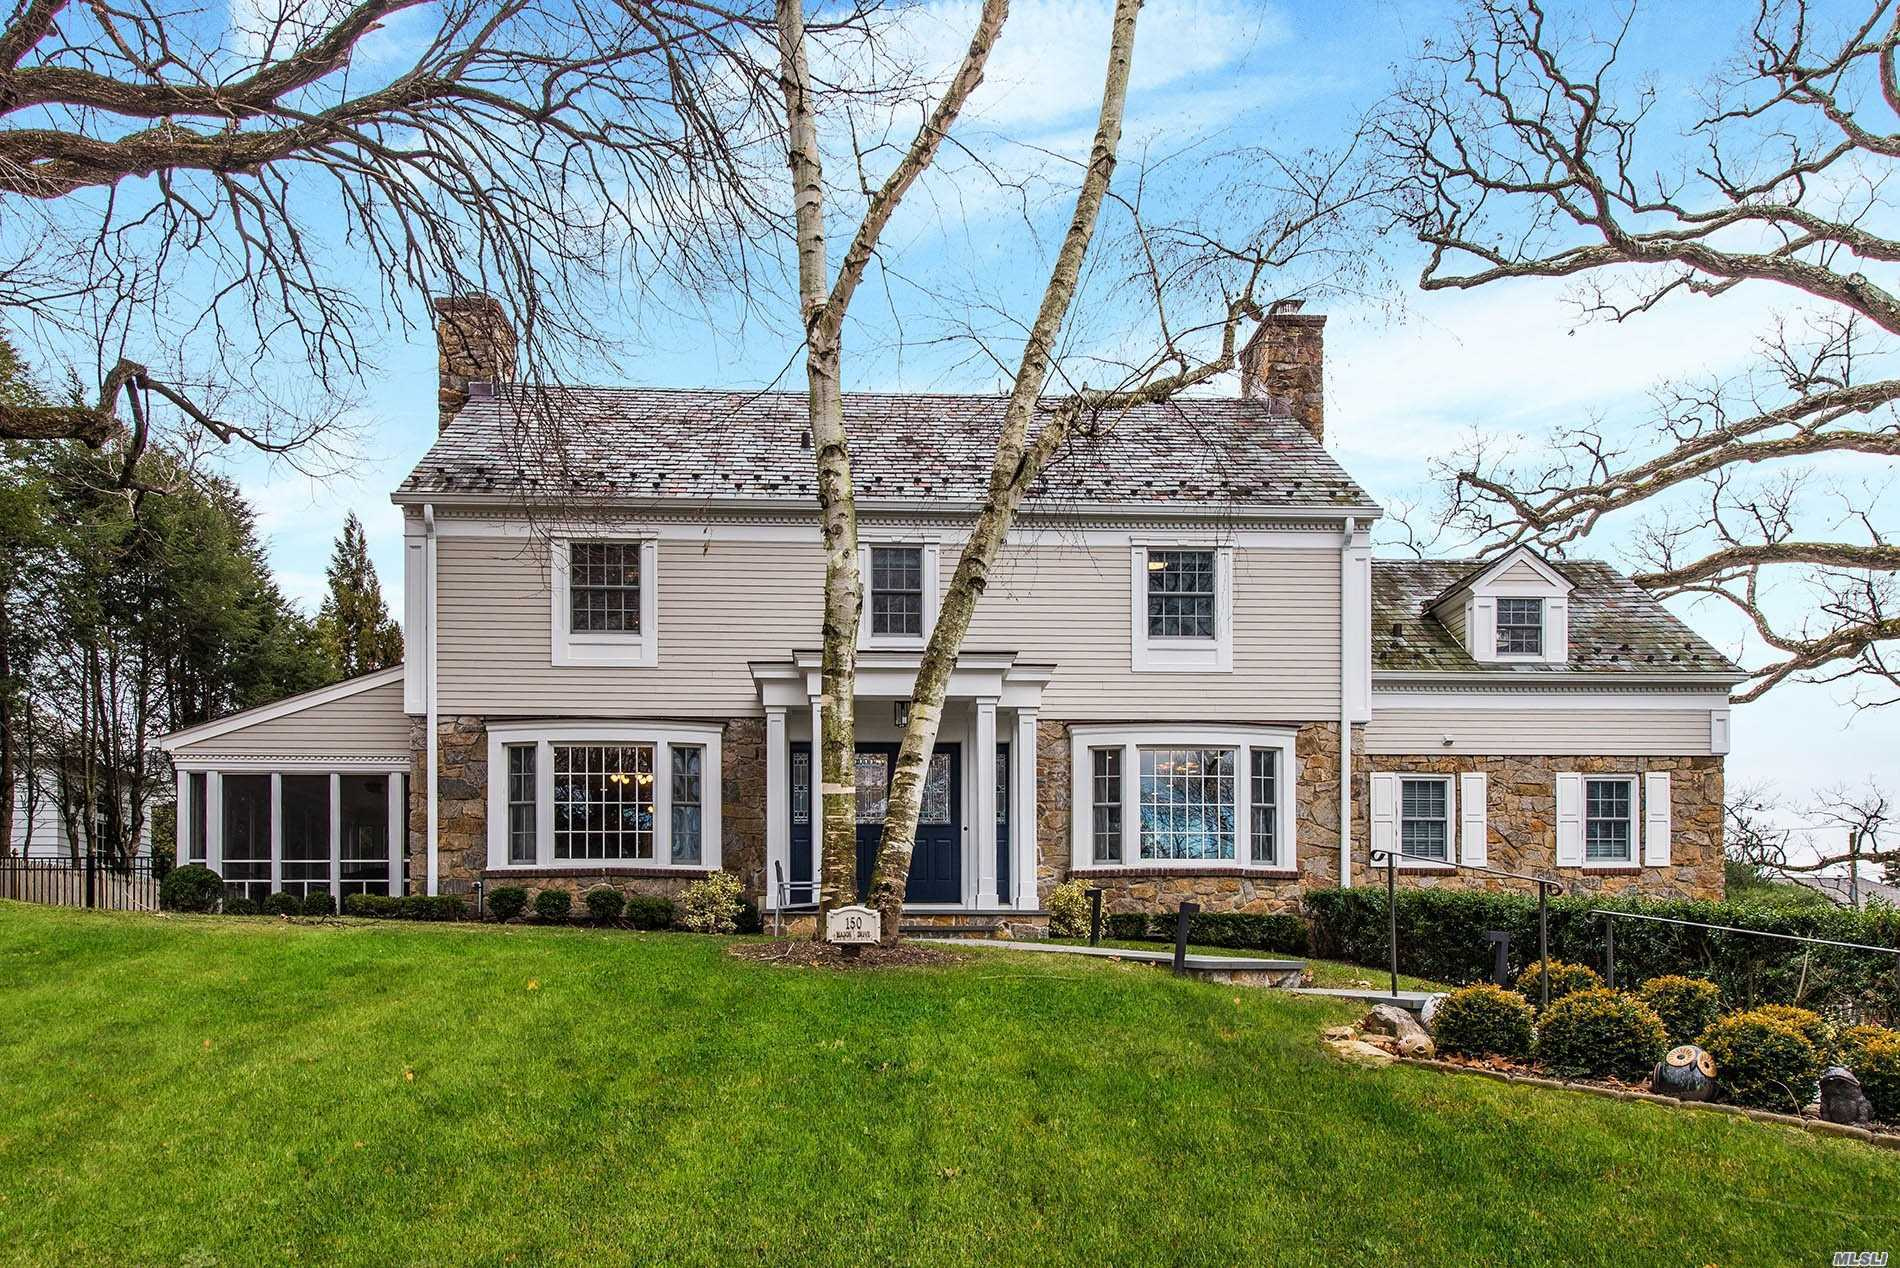 Beautiful Flower Hill Colonial Set On Large .37 Acre. Stunning Renovation Completed In 2017 With Every Attention To Detail And No Expense Spared. The Sleek Design Is Complimented By A Modern Open Floor Plan And Incredible Chef's Kitchen W/Vaulted Ceiling. 2nd Floor Boasts Large Master Bdrm With Bath And Additional 3 Bdrms. Guest Bdrm With Bath On 1st Floor. Close To Town/Train And Large Usable Property Makes For The Perfect Opportunity In Manhasset.